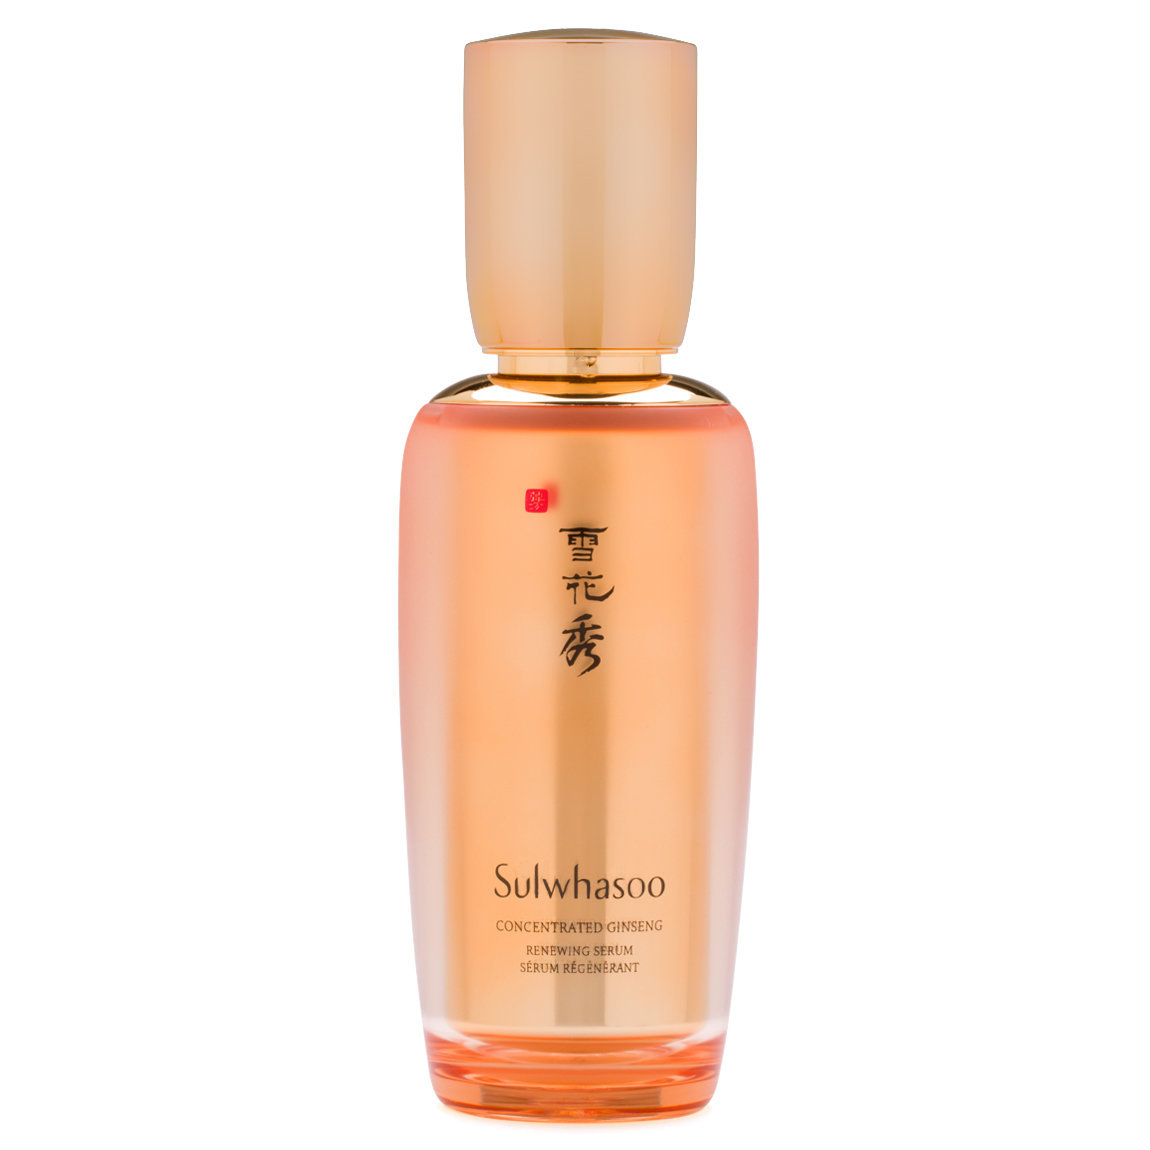 Sulwhasoo Concentrated Ginseng Renewing Serum product swatch.